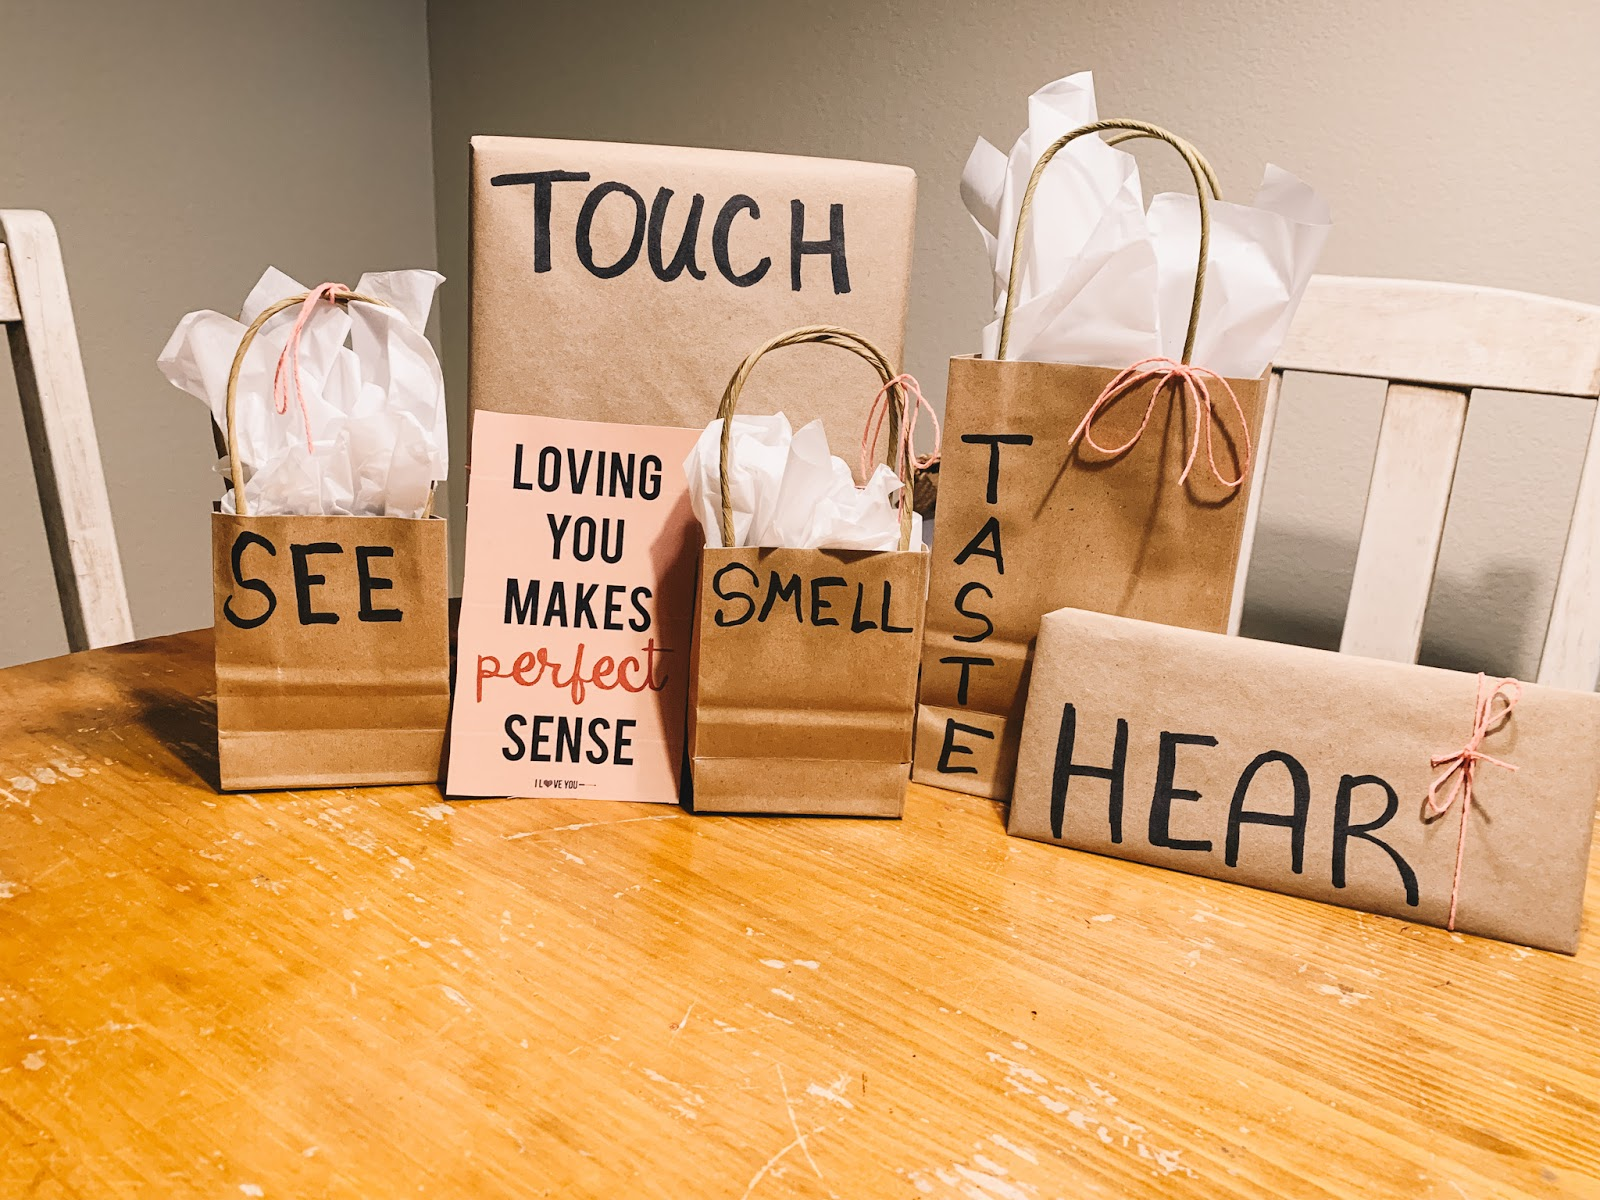 The 5 Senses Valentines Day Gift: Ideas for Him & Her